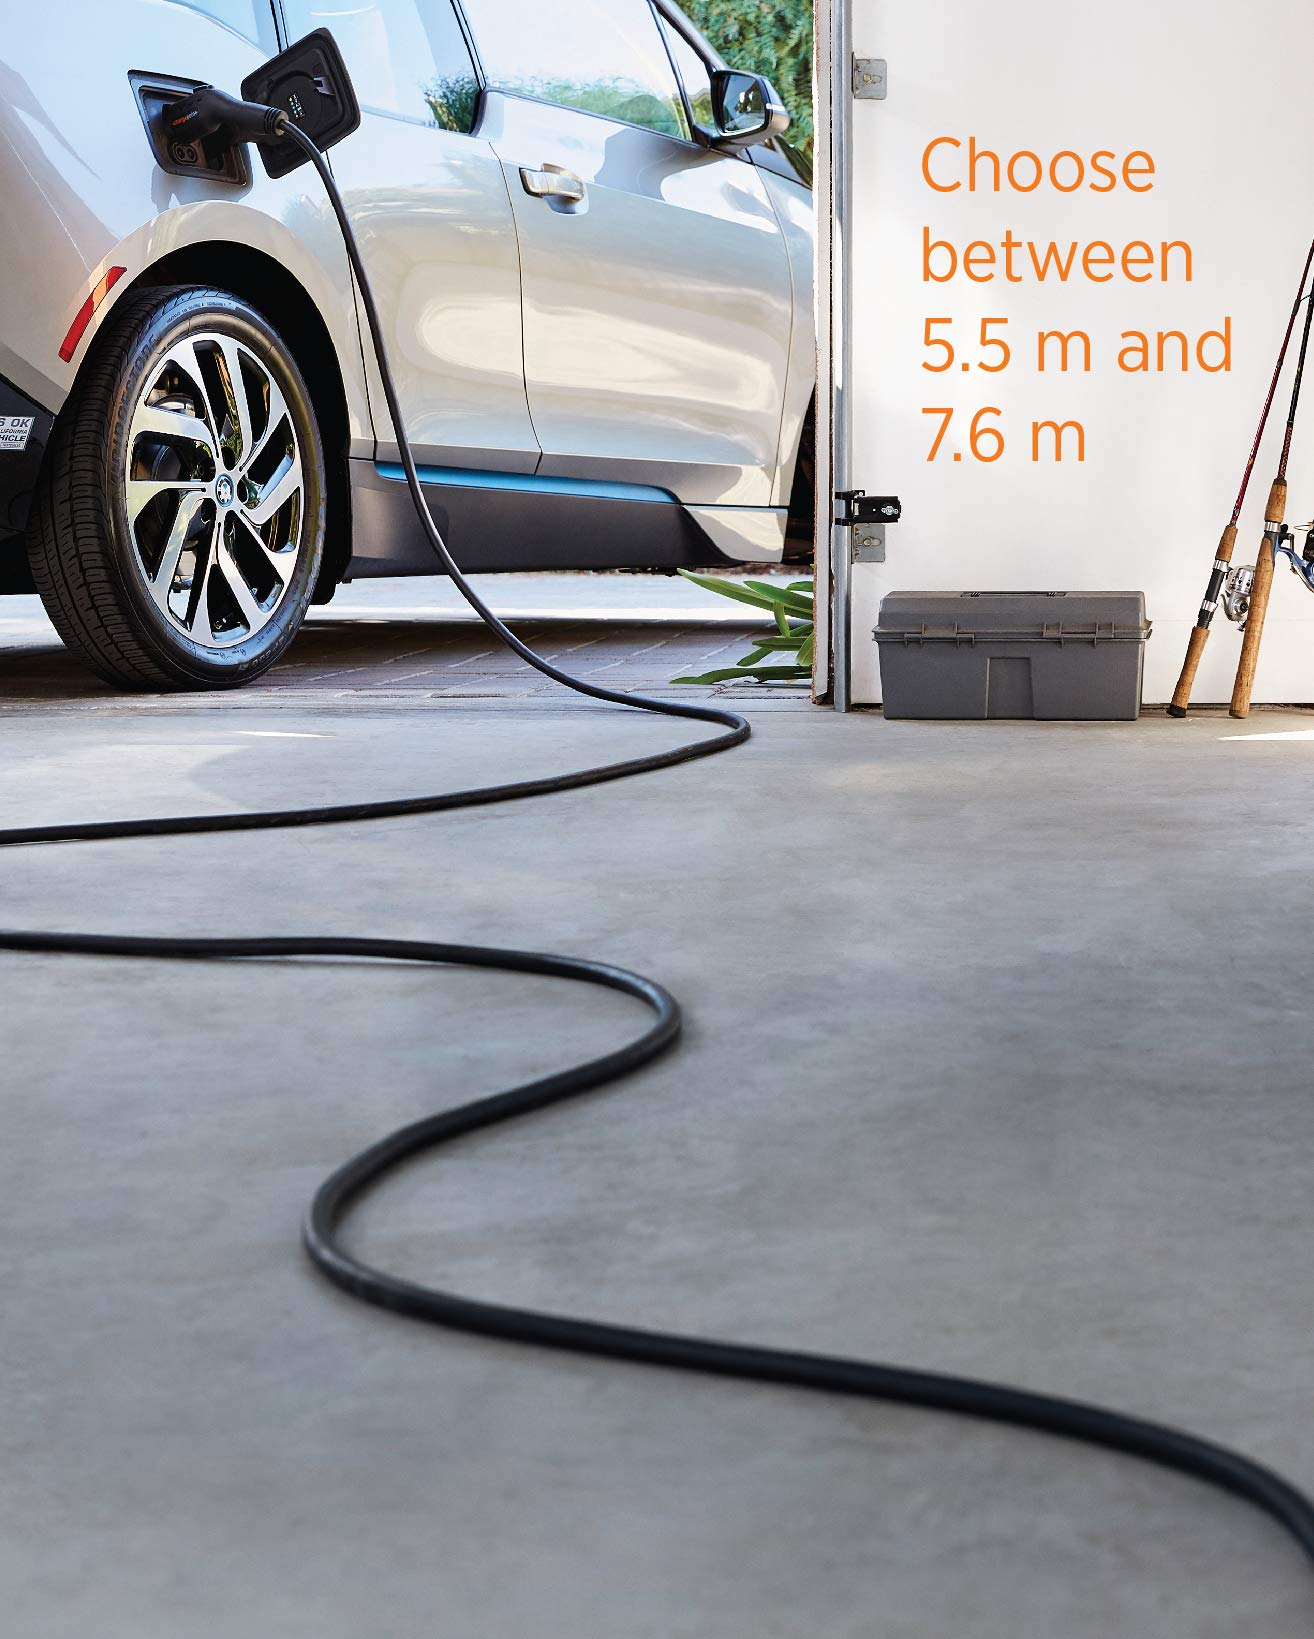 ChargePoint Home WiFi Enabled Electric Vehicle (EV) Charger - Level 2 240V EVSE, 32A Electric Car Charger for All EVs, UL Listed, ENERGY STAR Certified, Hardwired (no outlet needed), 18 Ft Cable by ChargePoint (Image #7)